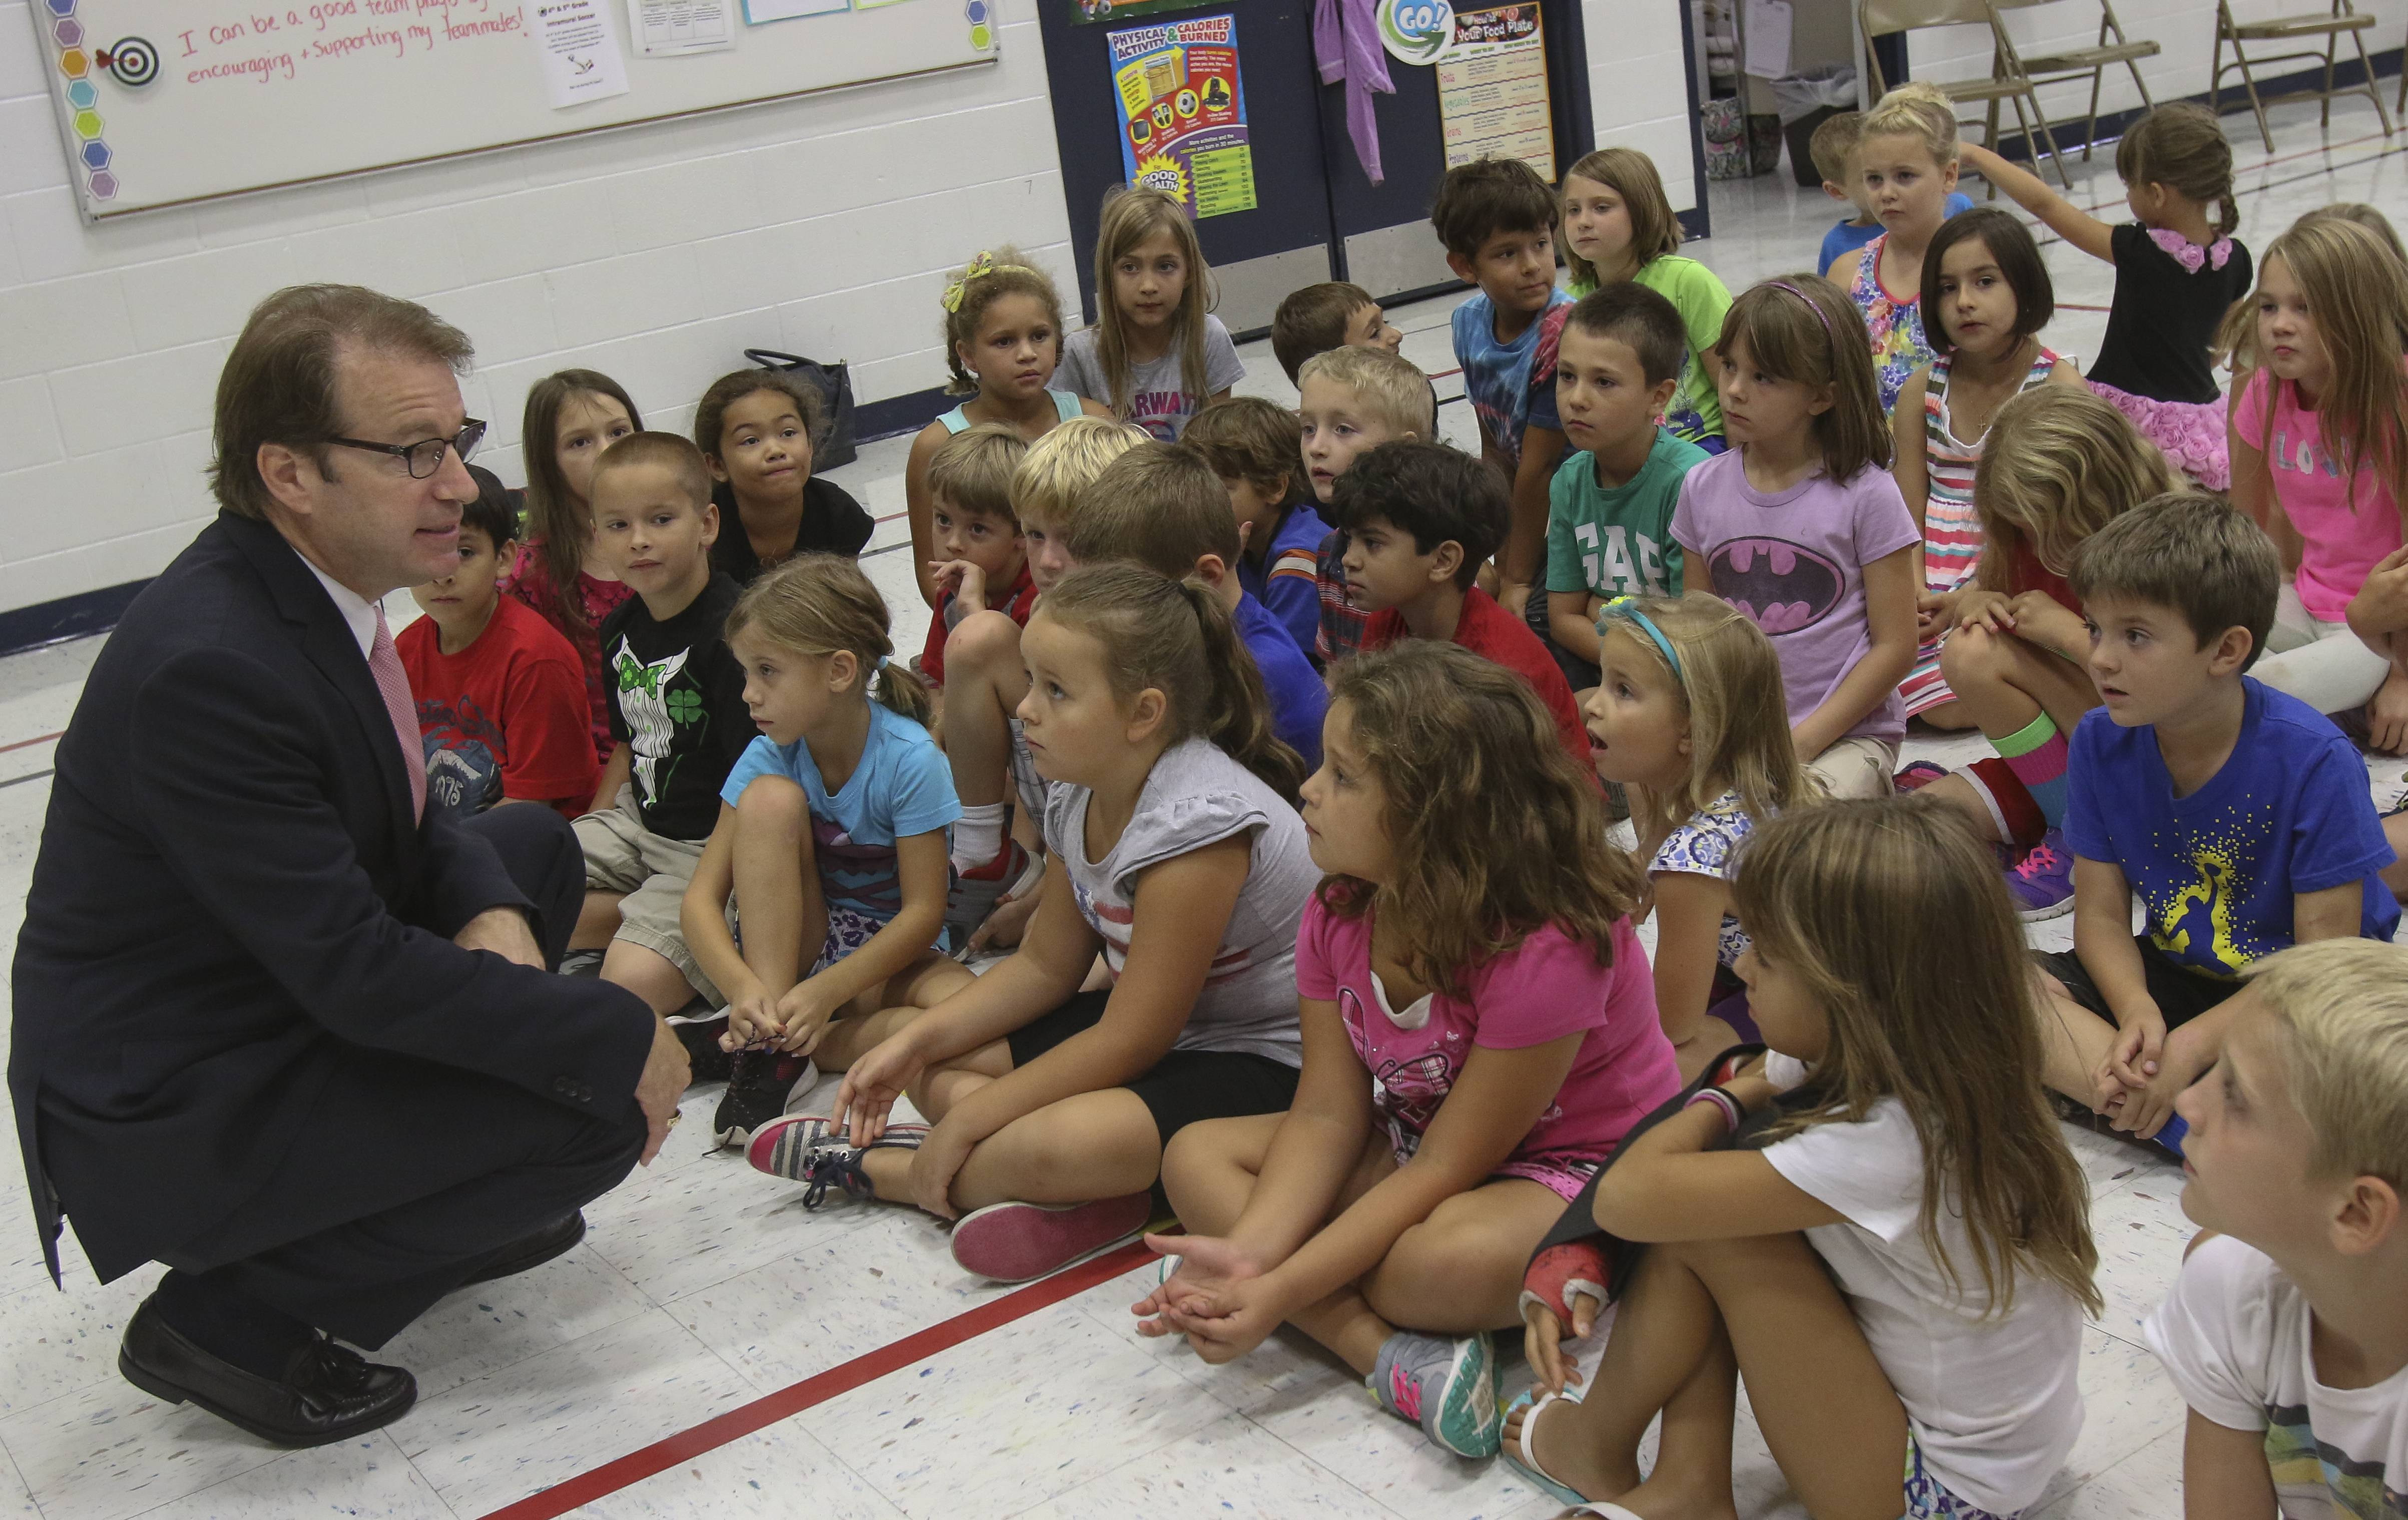 U.S. Rep. Peter Roskam speaks to second-graders about government at Emerson Elementary School in Wheaton.